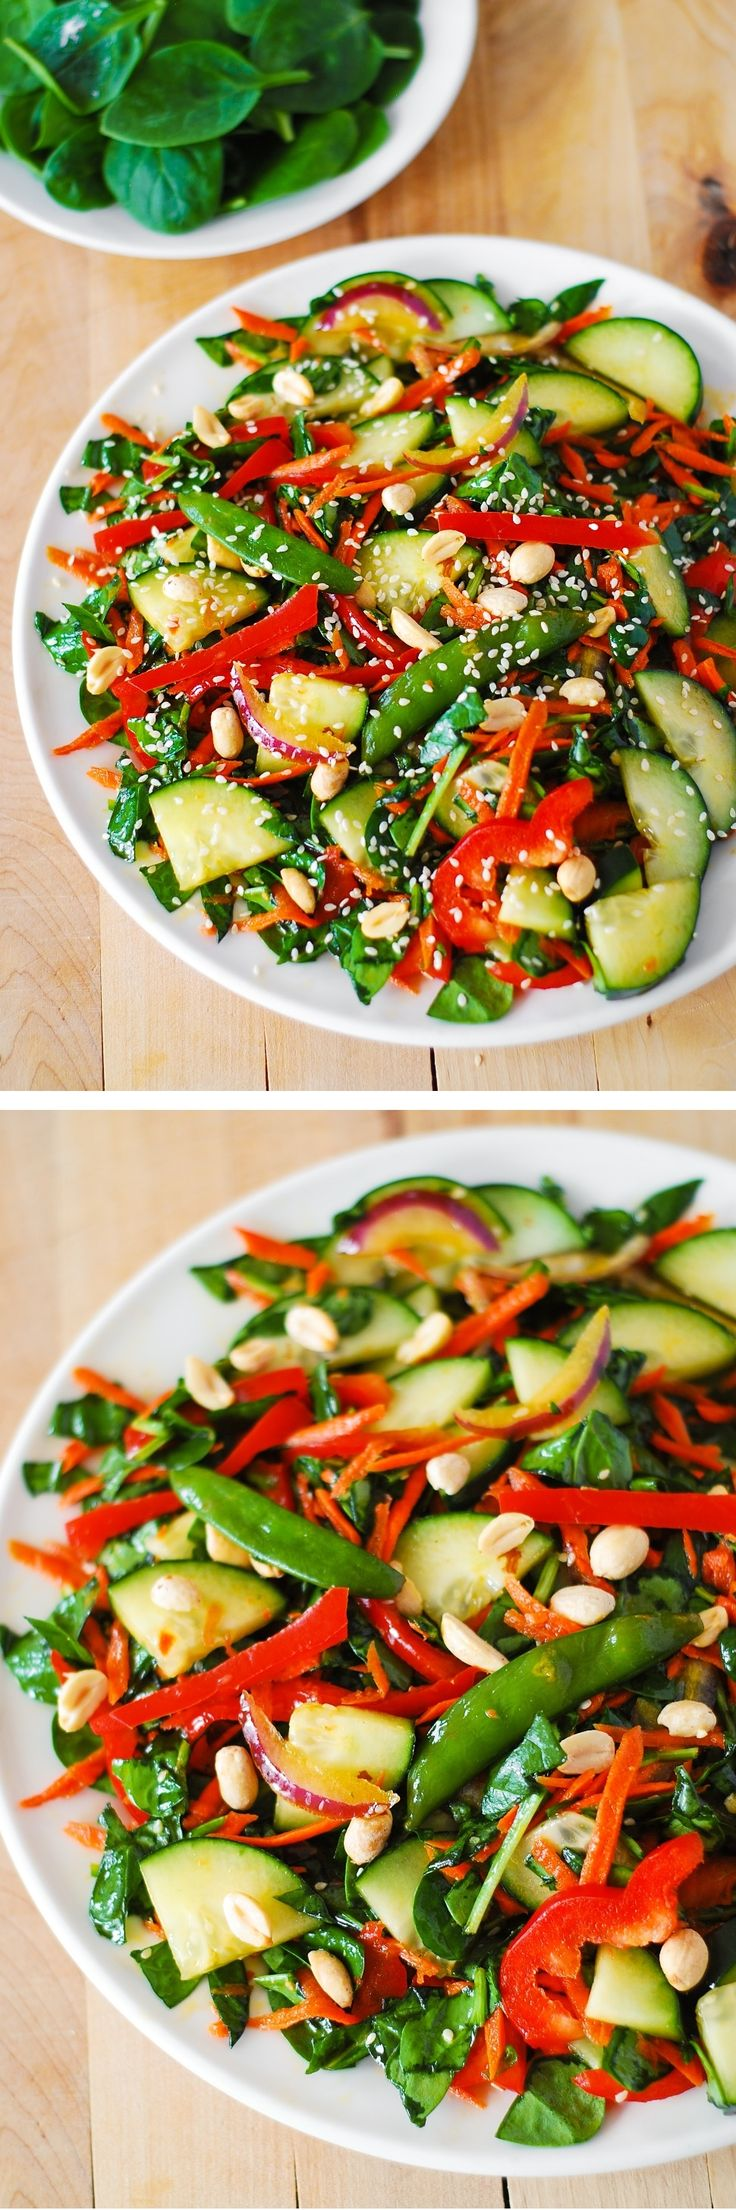 Crunchy Asian Salad with Peanut Dressing